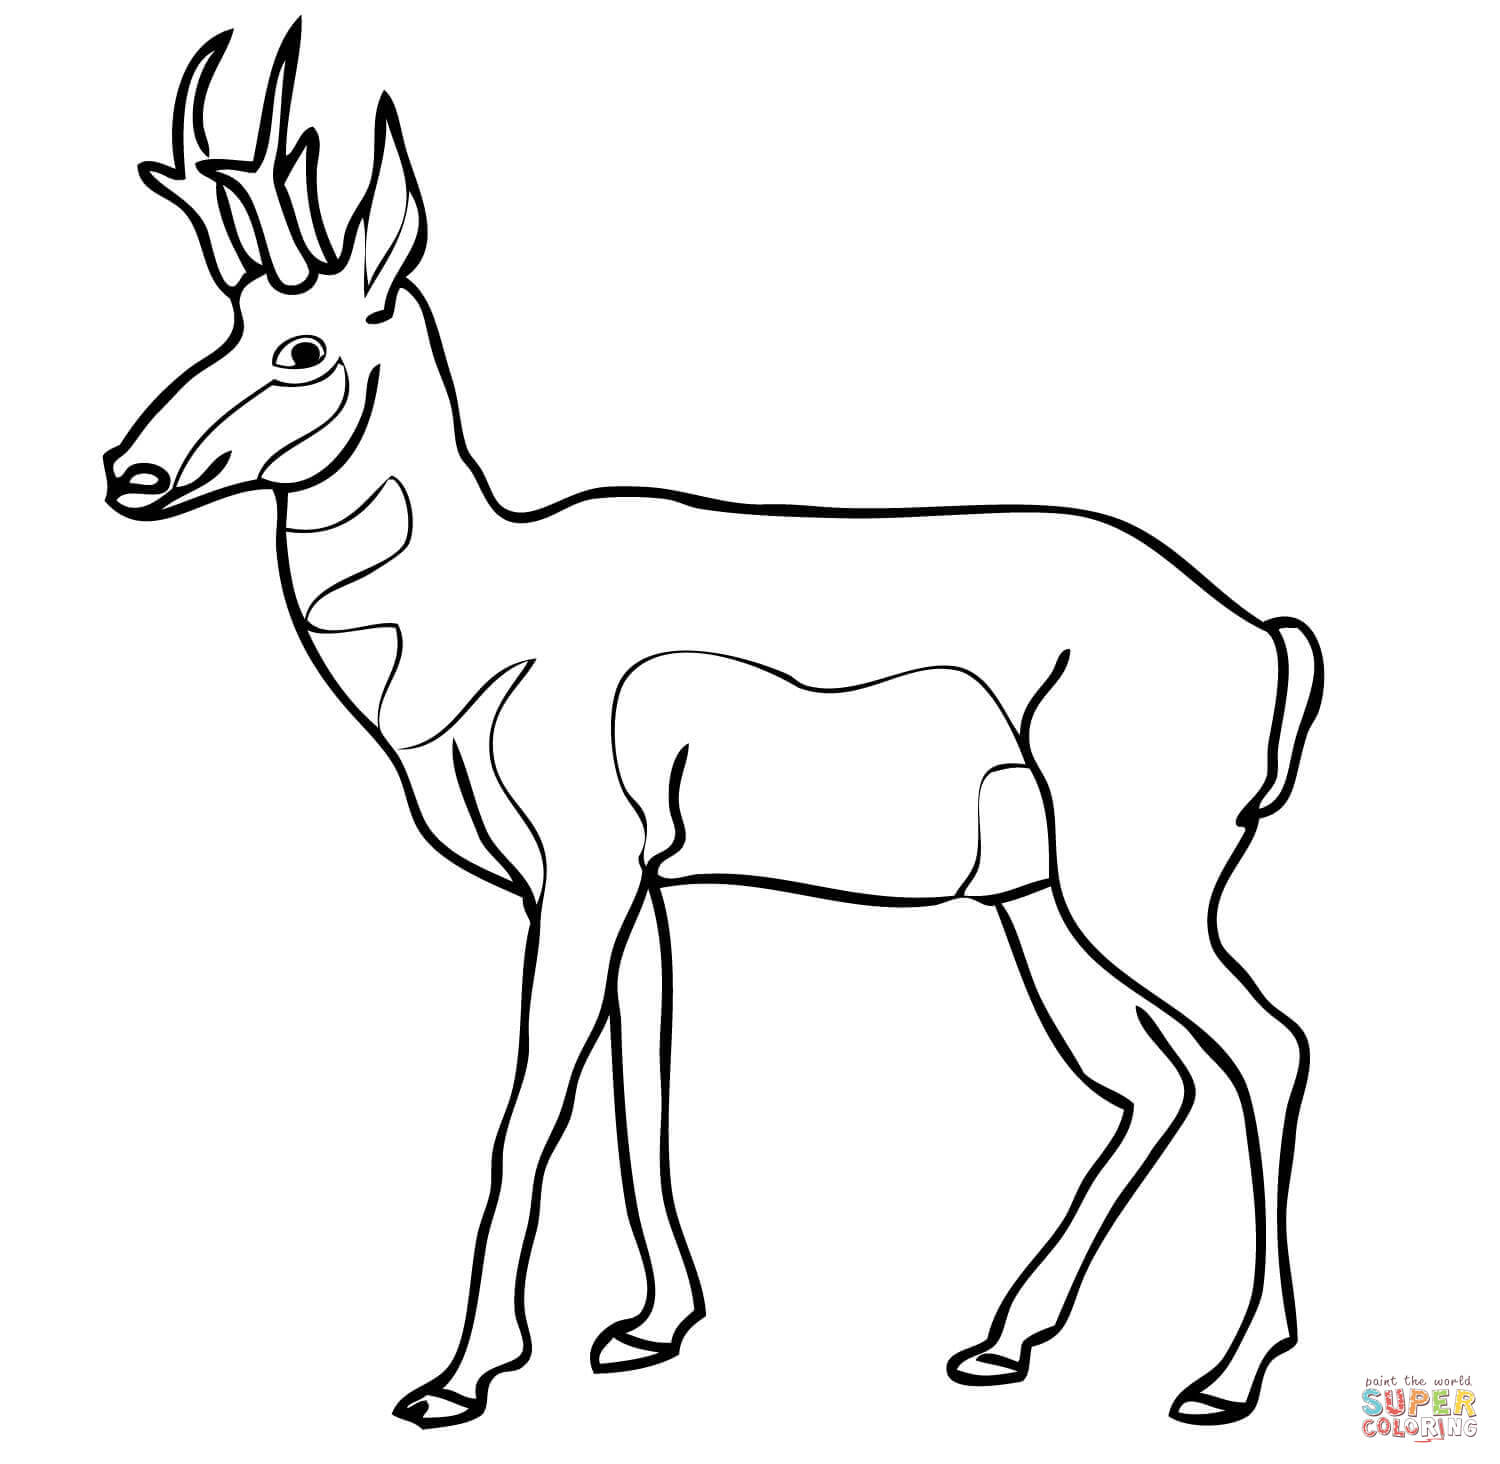 Pronghorn Antelope clipart #2, Download drawings